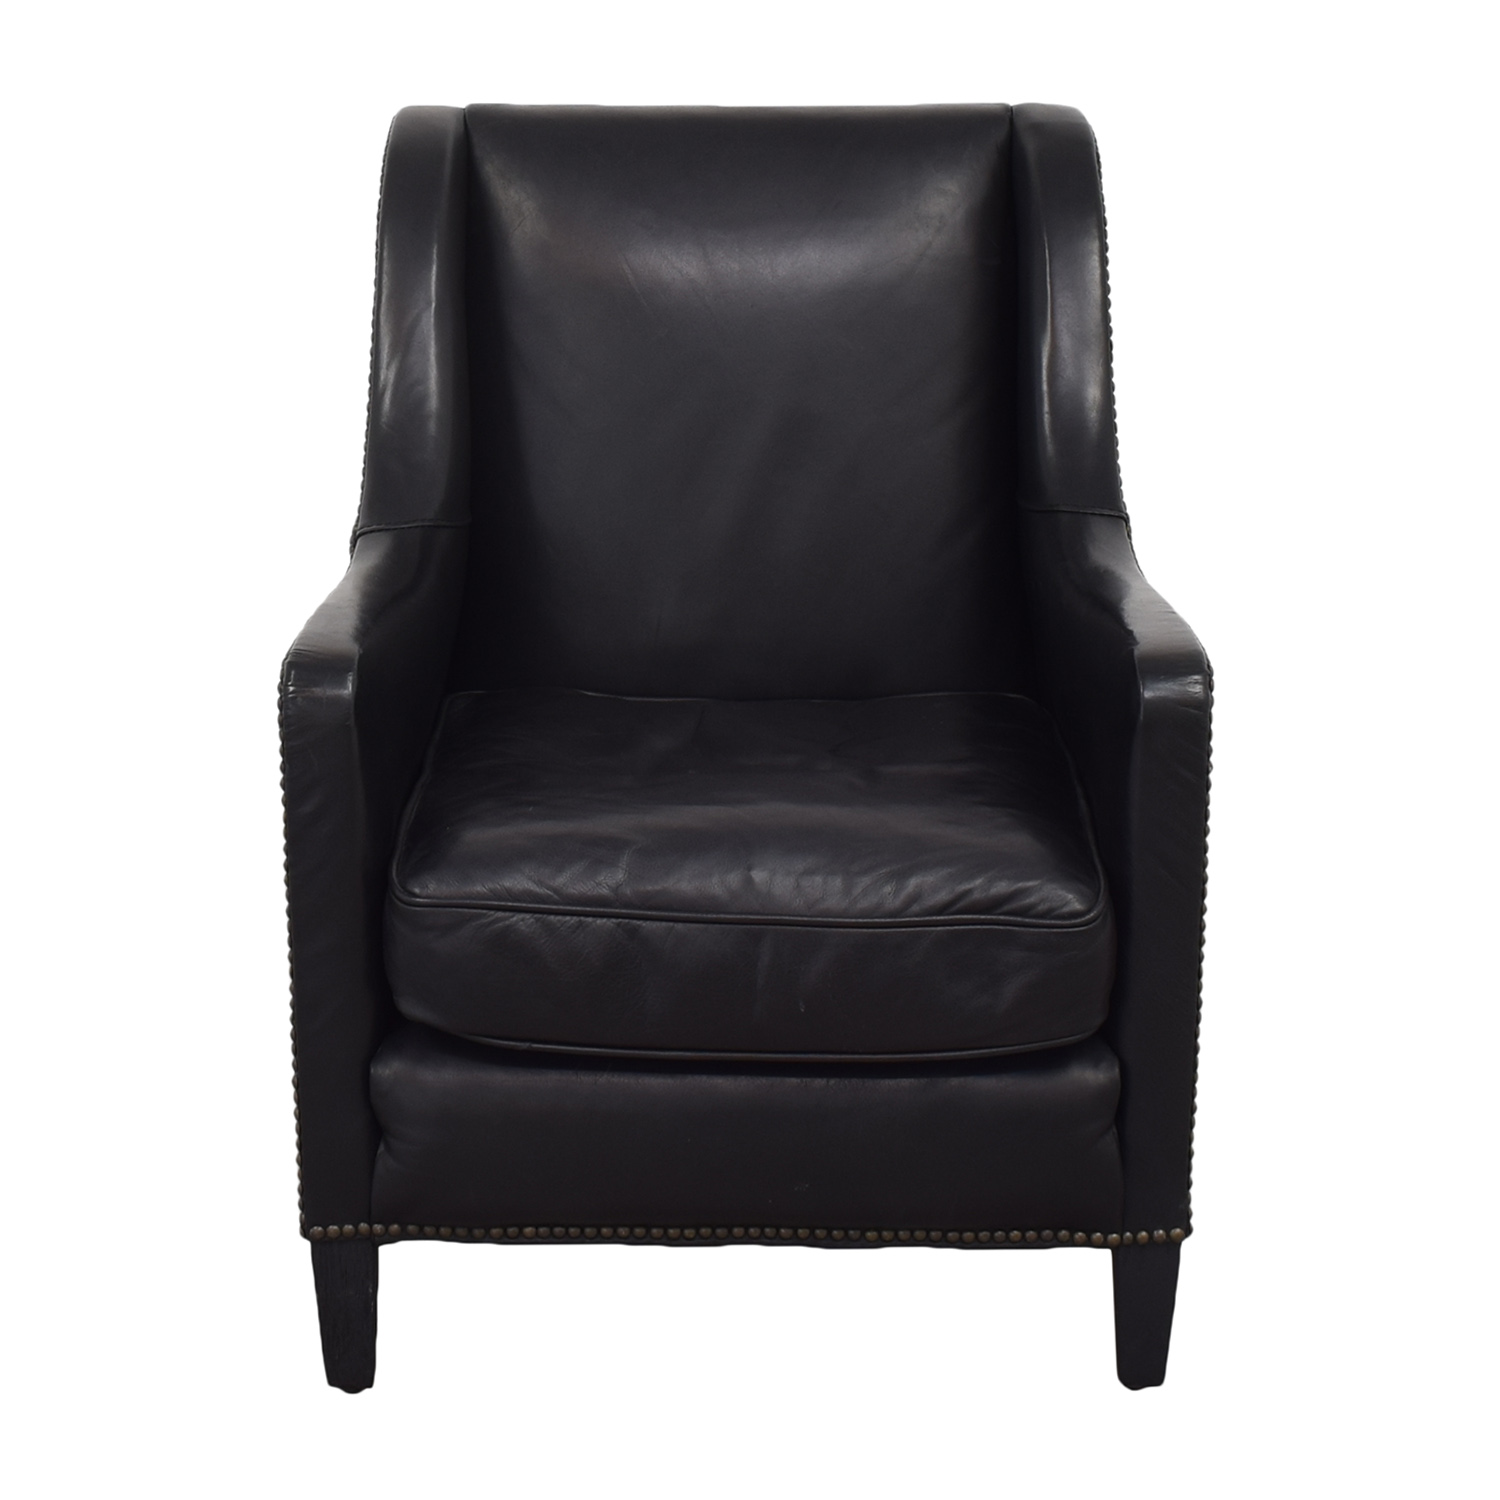 Restoration Hardware Blake Club Chair sale